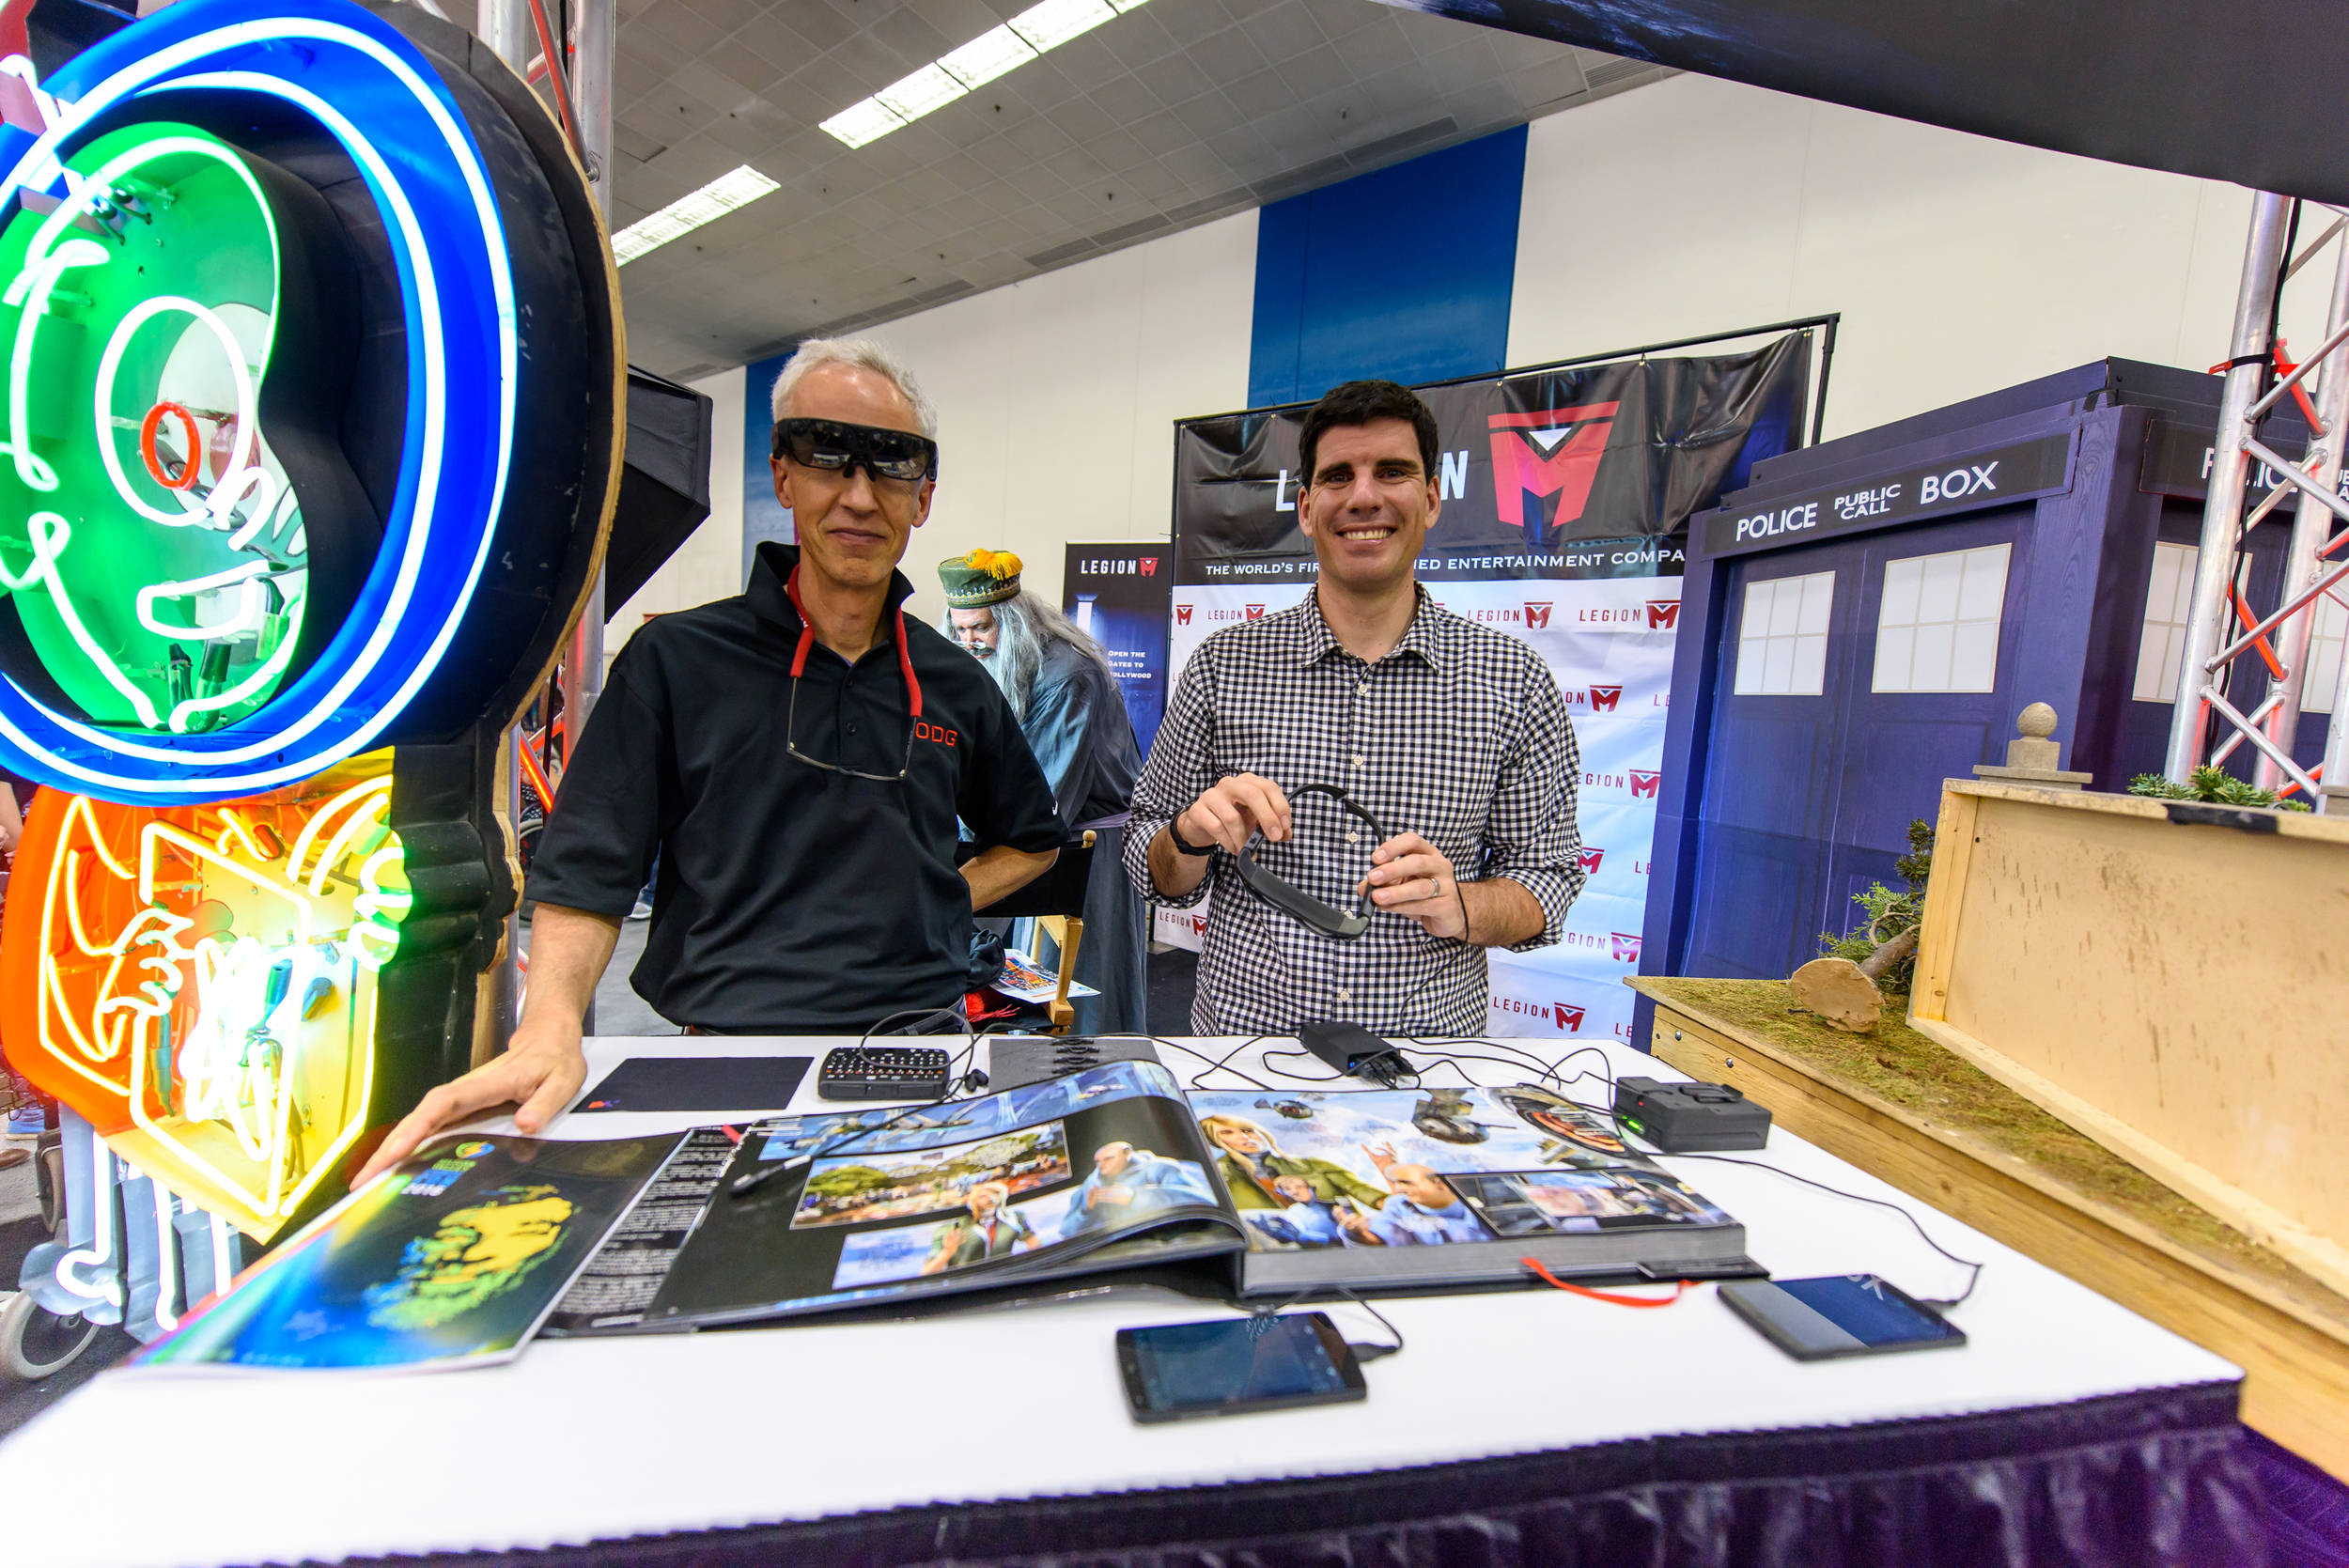 We also had special guests from Osterhaut Design Group, showing off augmented reality comic books.